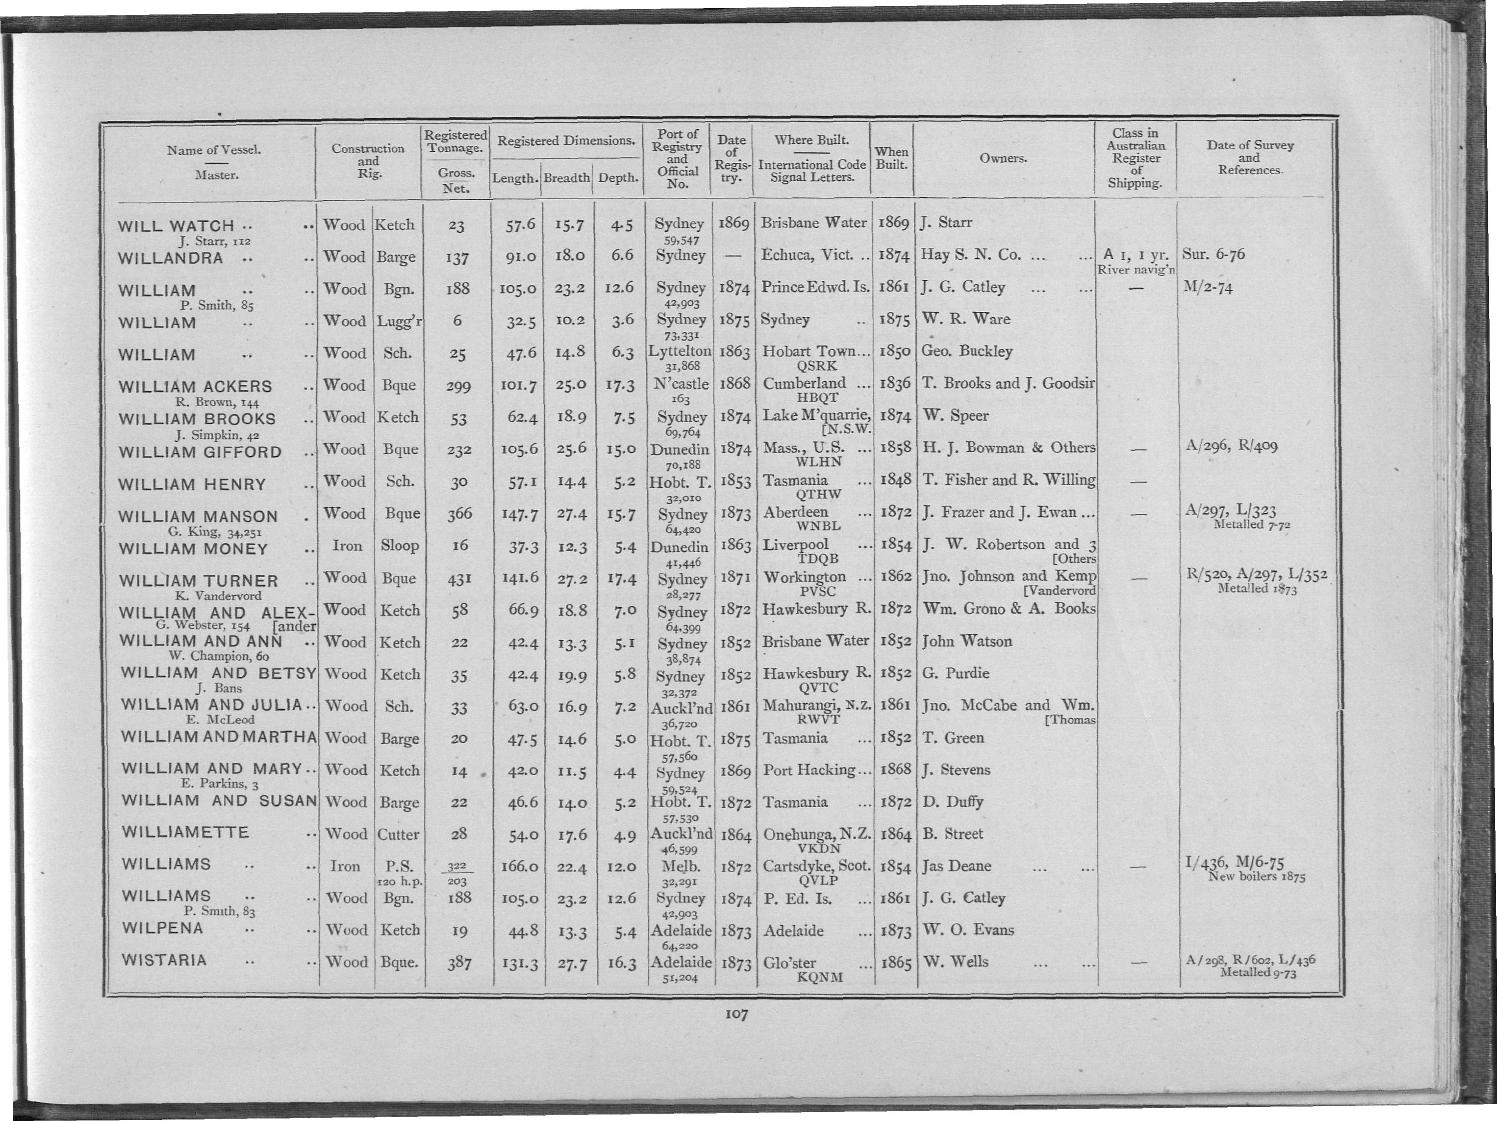 The Register of Australian and New Zealand Shipping 1876